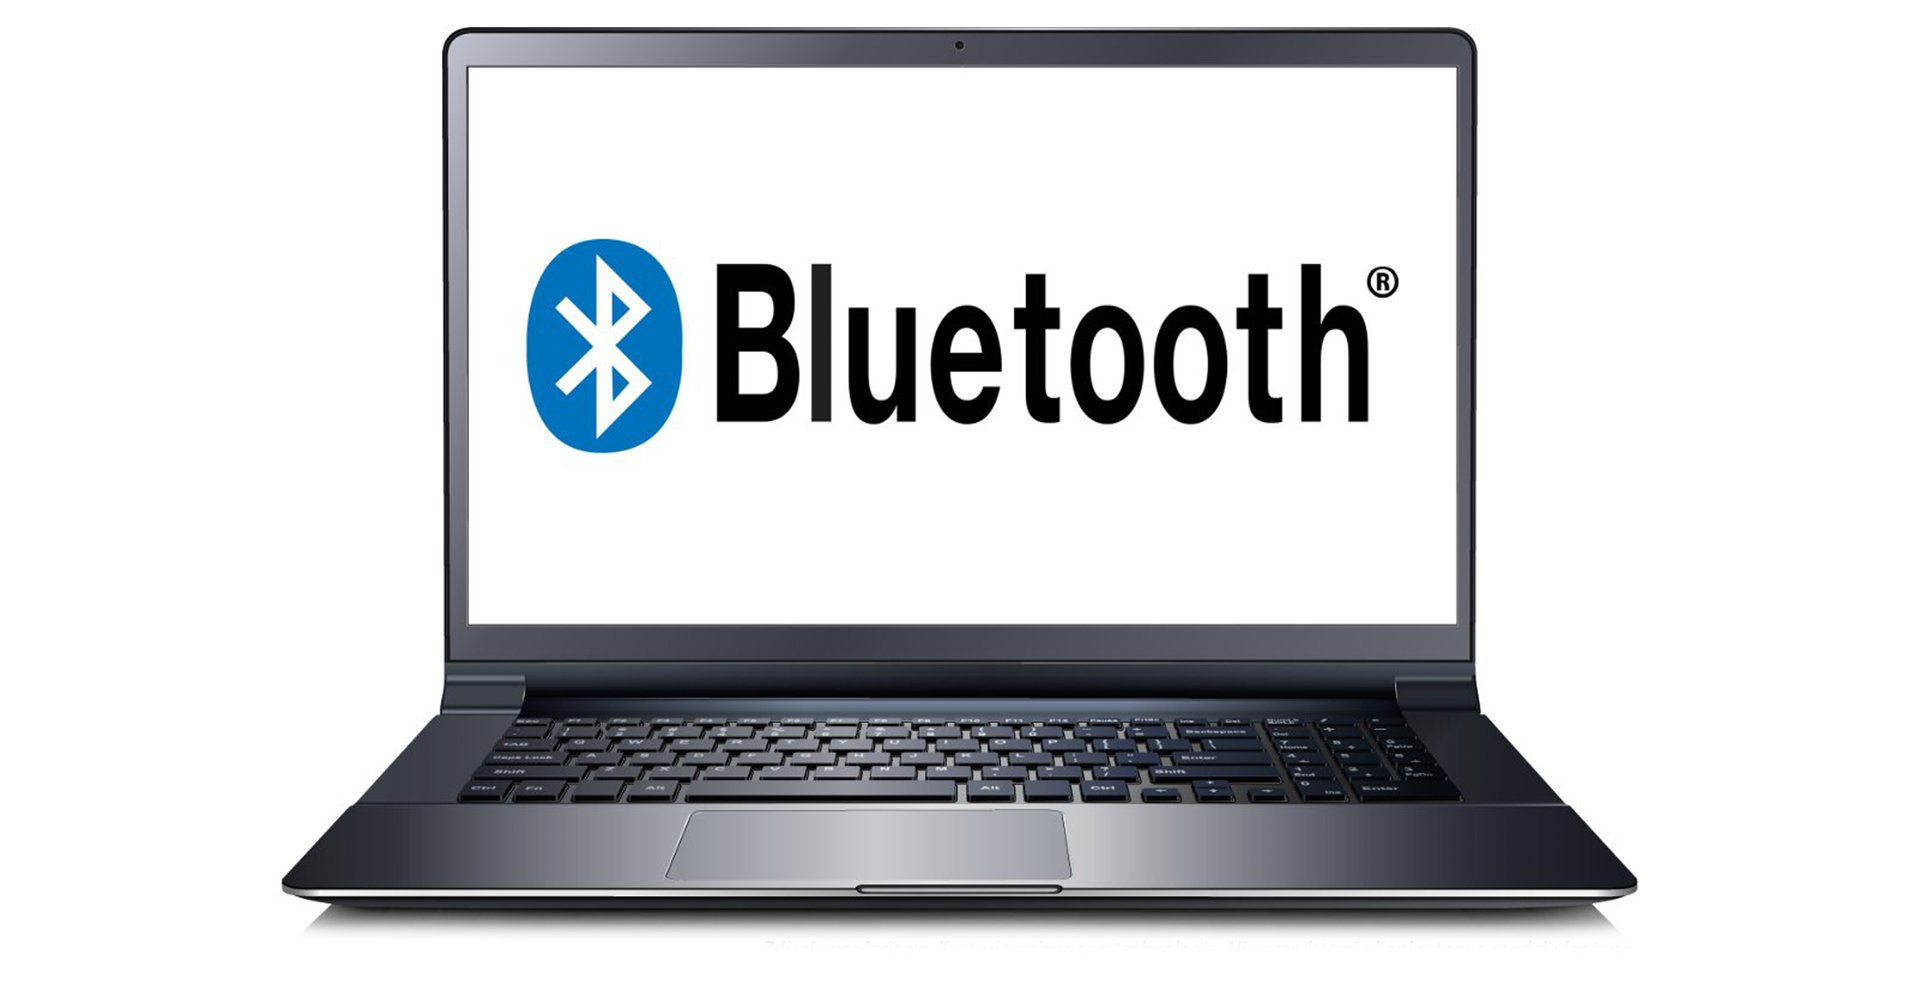 Dell Latitude 3590 i7-8550U 8GB 256GB Win10P                             Bluetooth